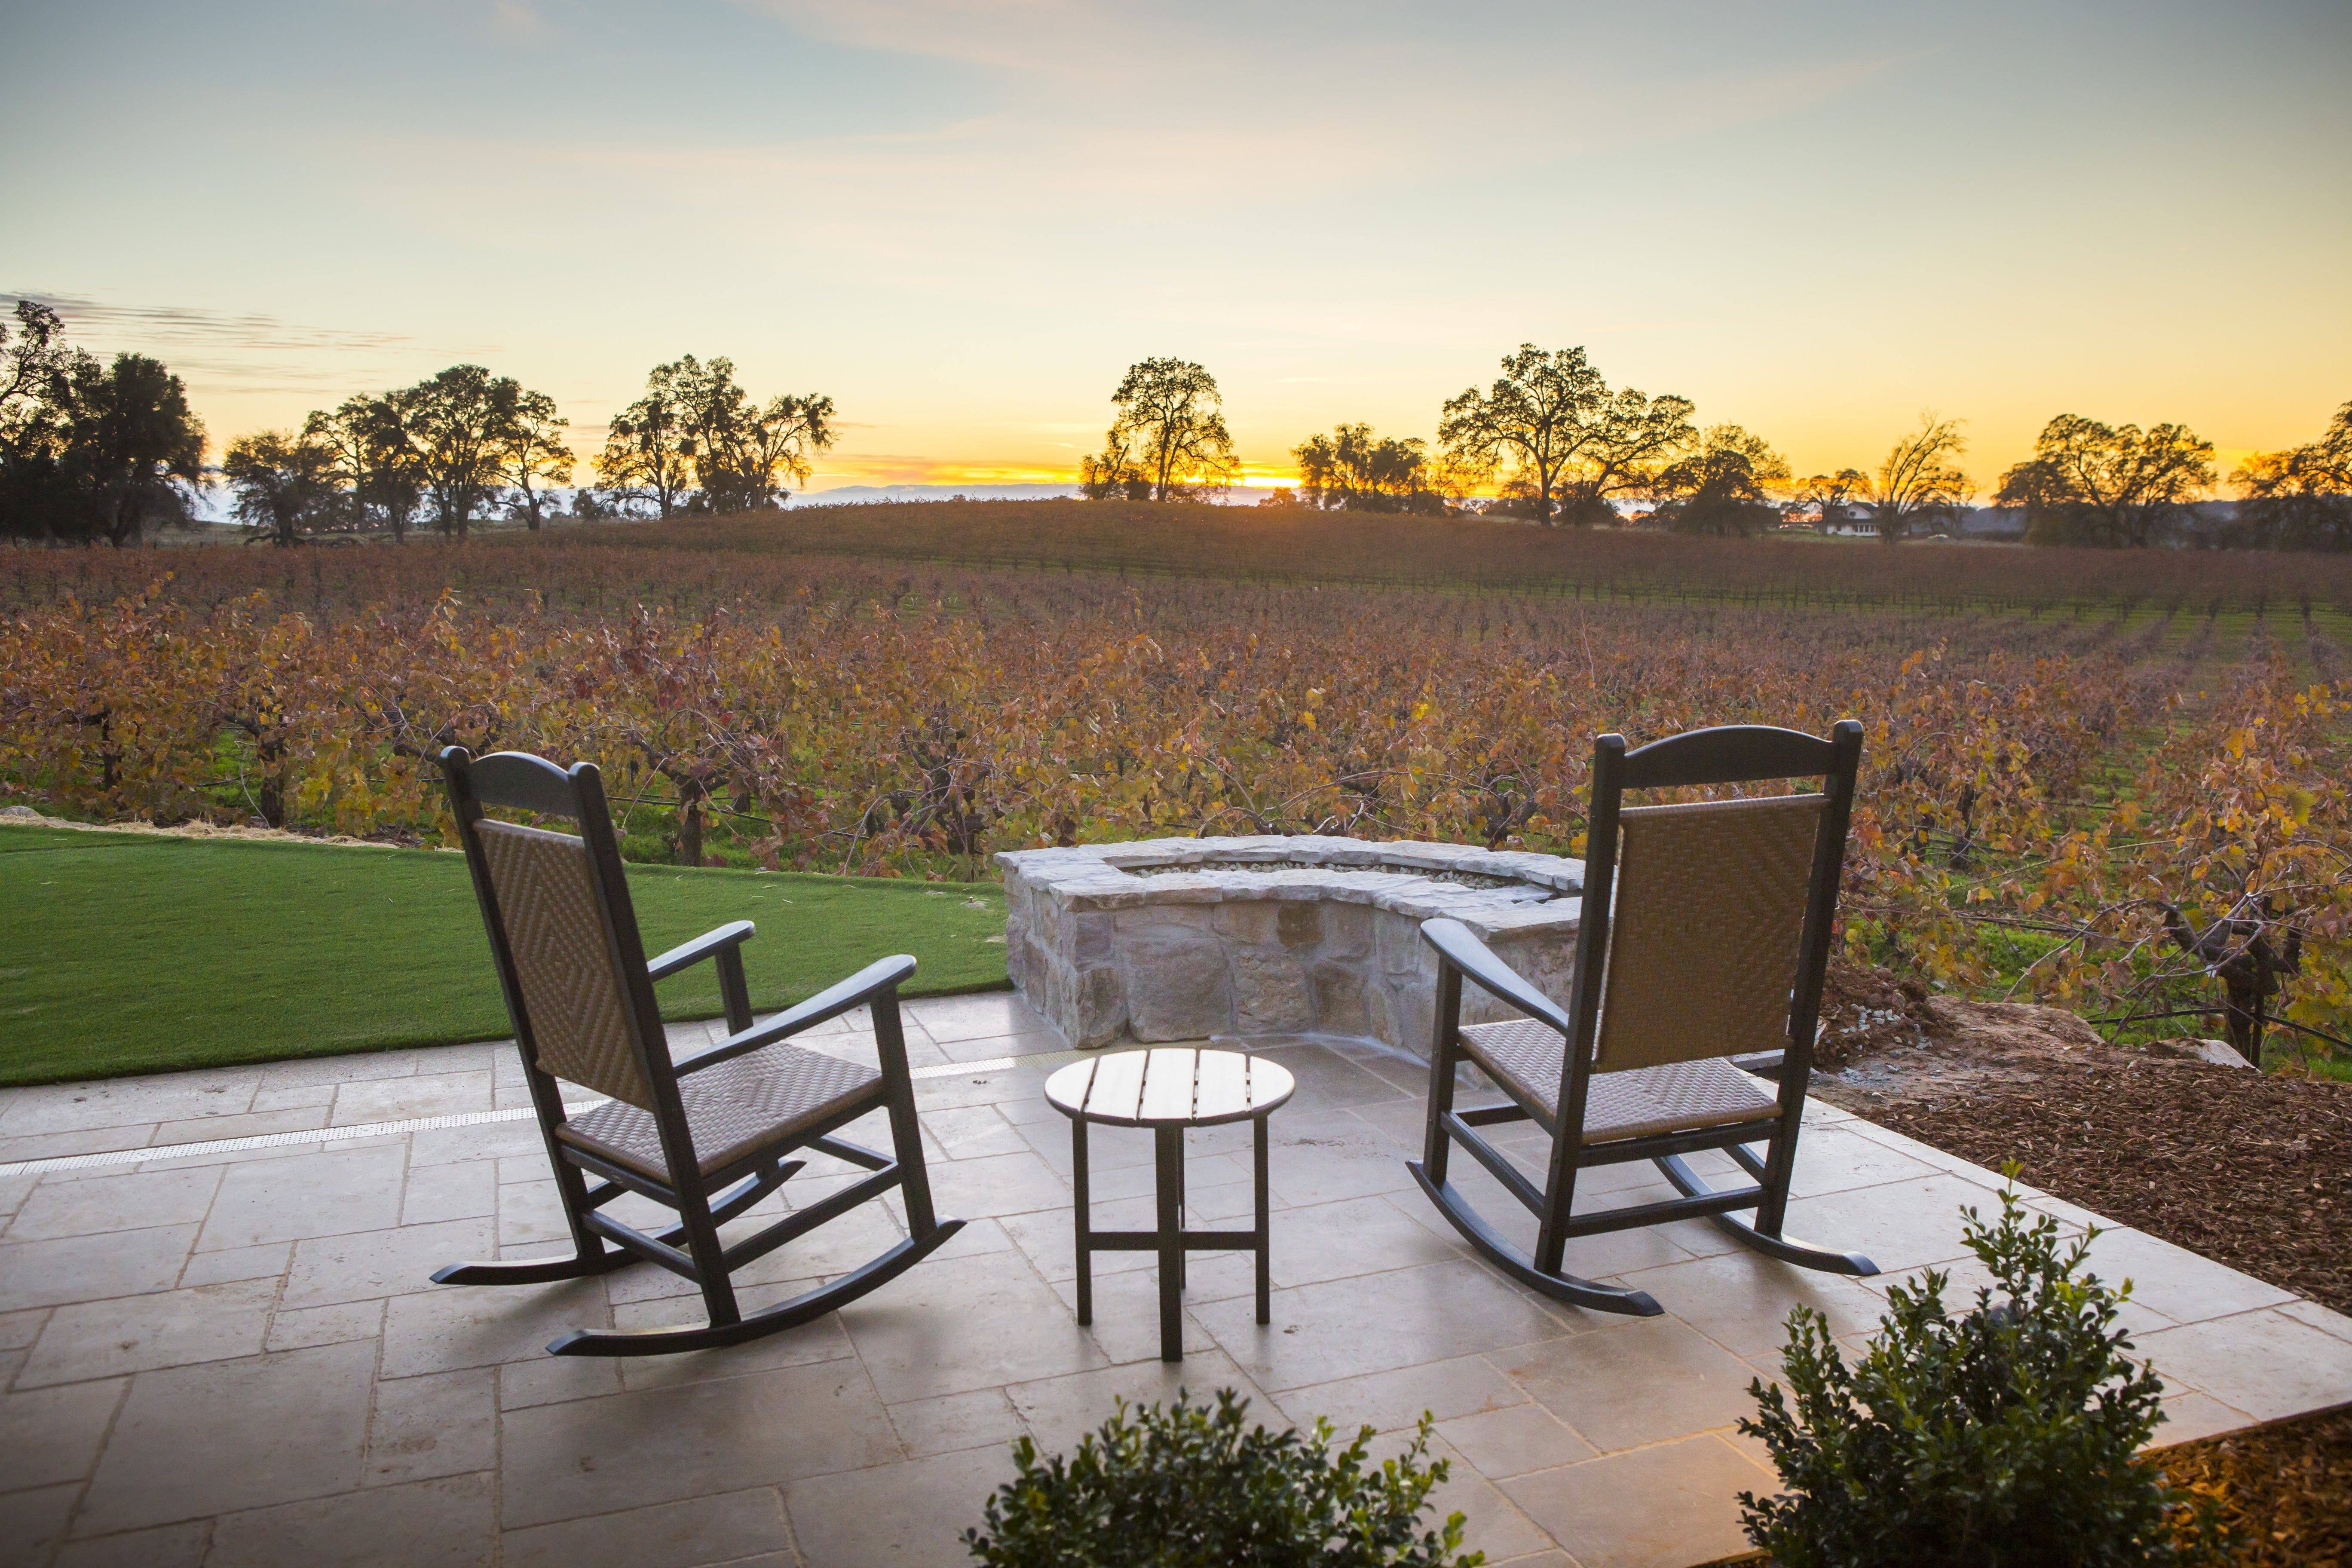 Cozy up to Fire pits with a fine bottle of wine and enjoy the vineyard views!